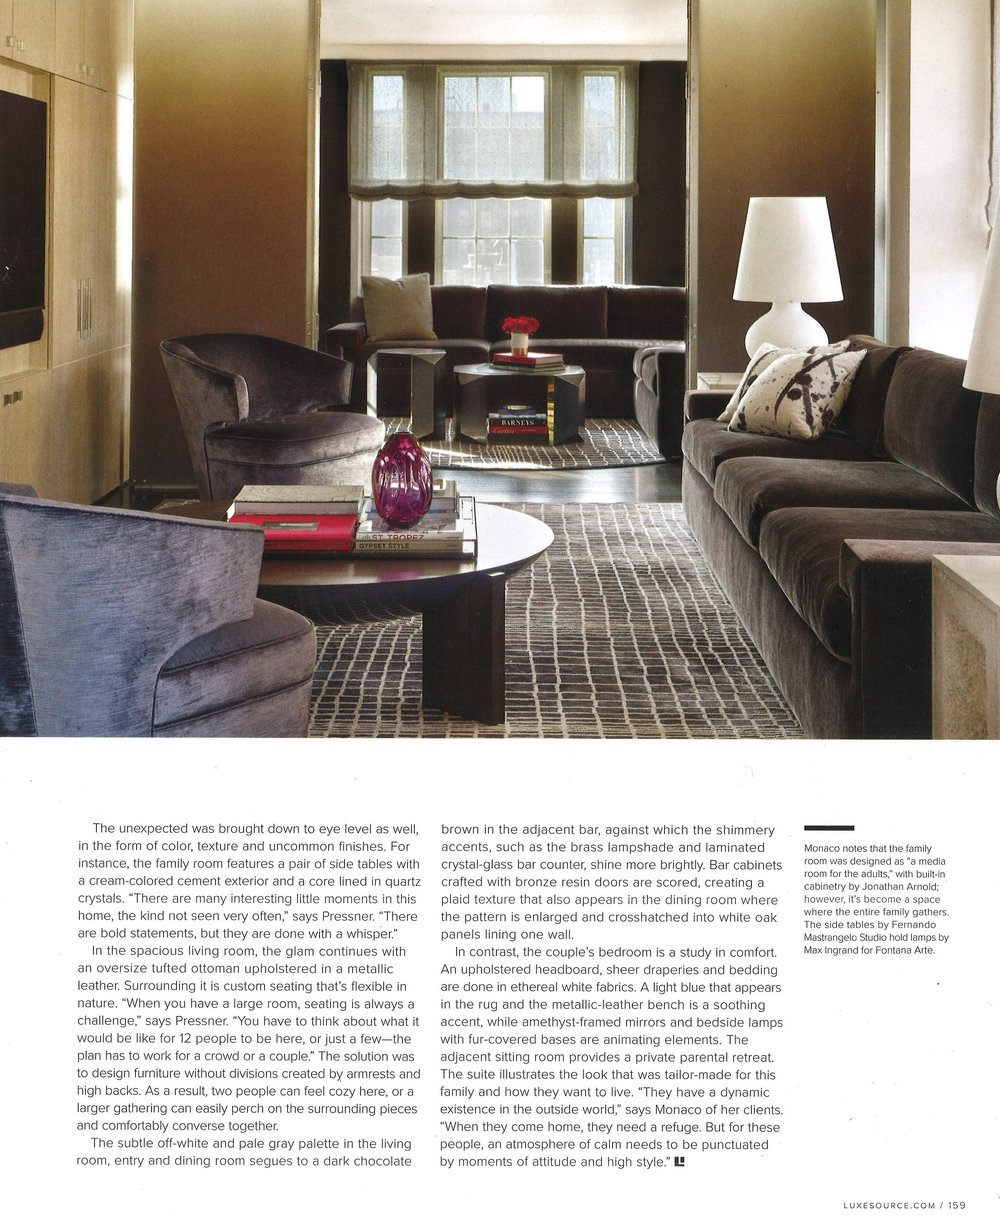 luxe march april 2019 NYC p159.jpg